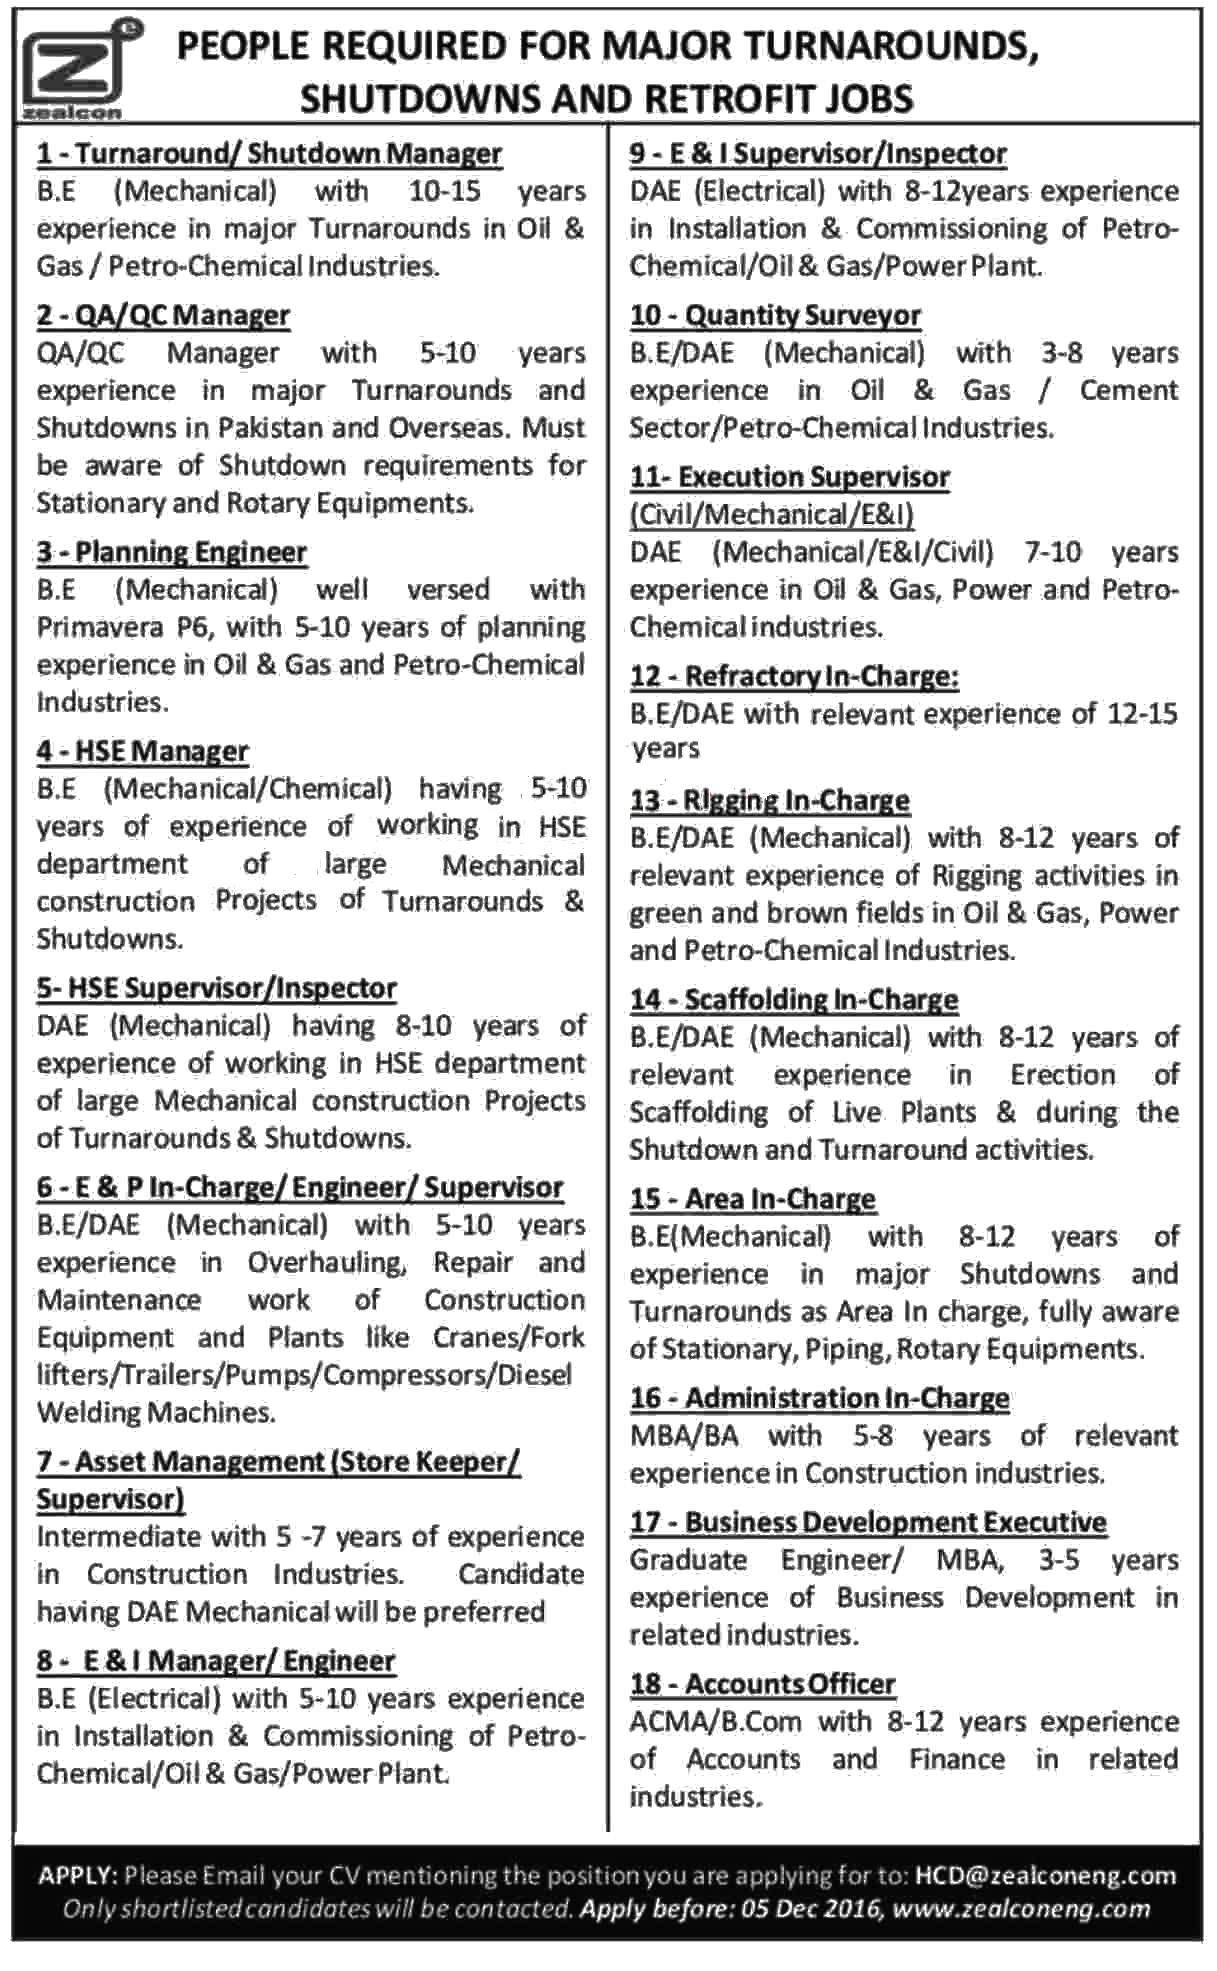 PO Box 1723 Rawalpindi Jobs Pakistan Army 2016 Public Sector Organization